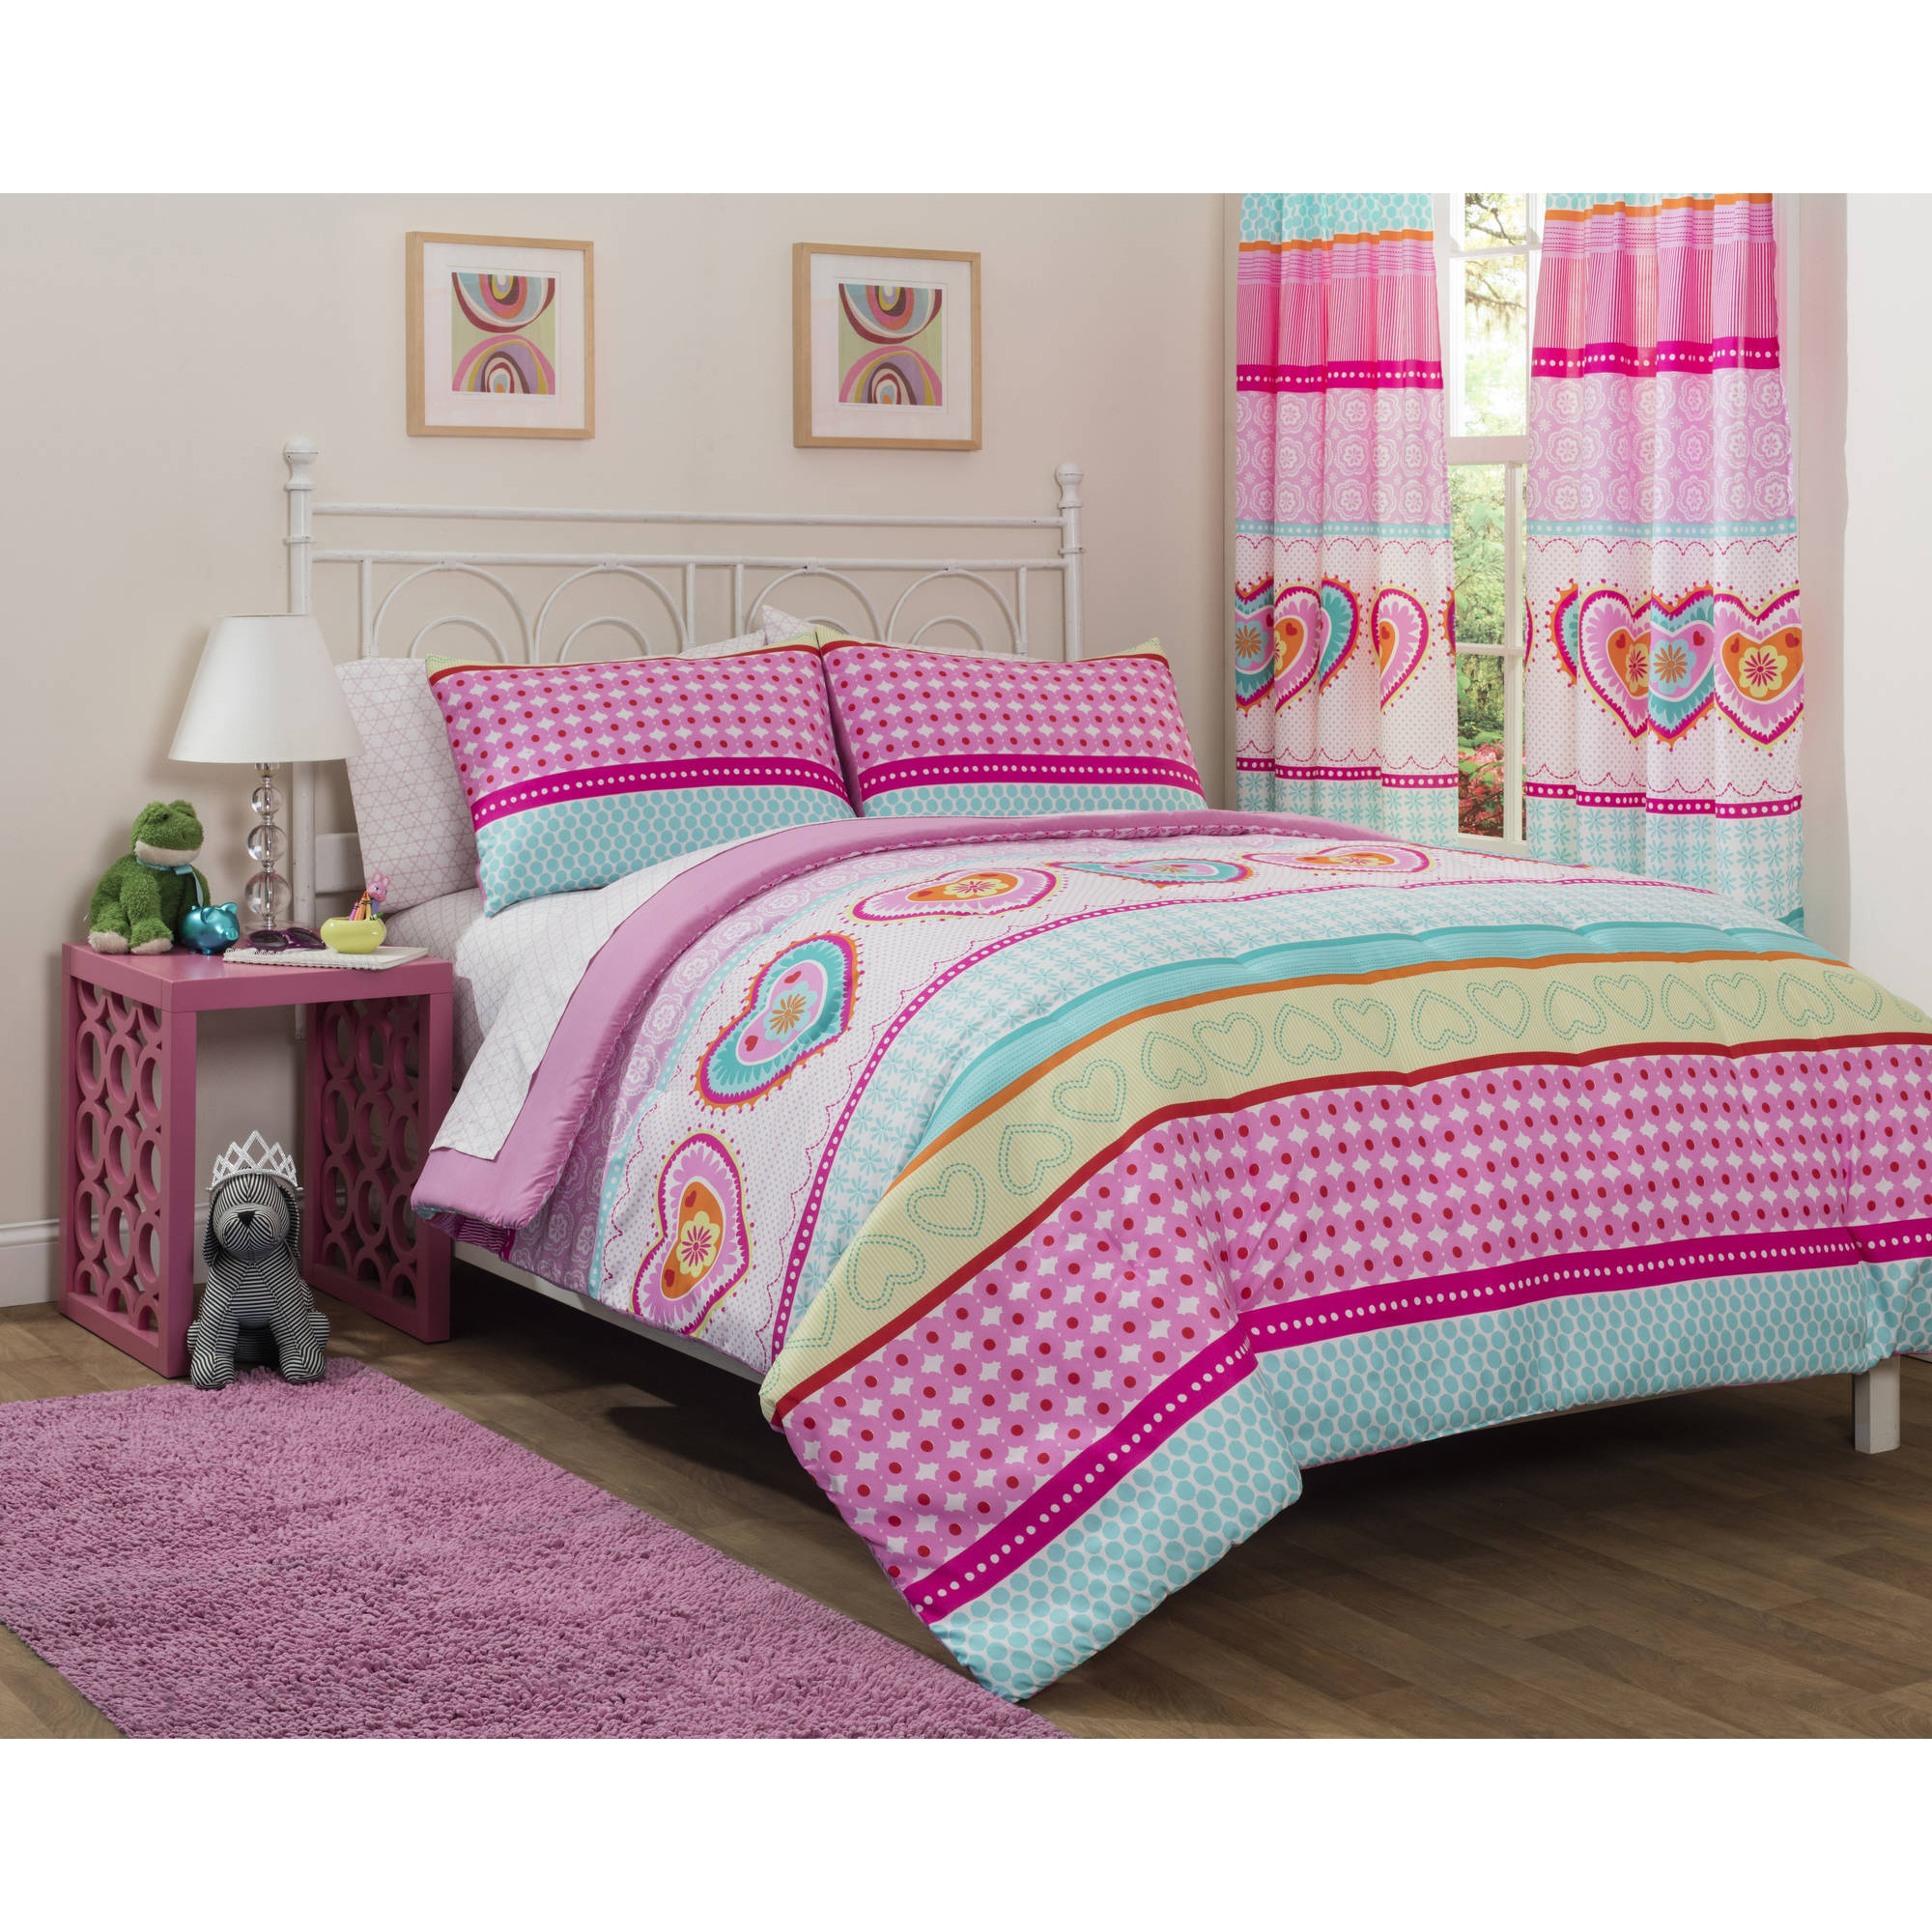 Idea Nuova Mainstays Kids Hearts and Stripes Patchwork Bed - in - a - Bag Bedding Set